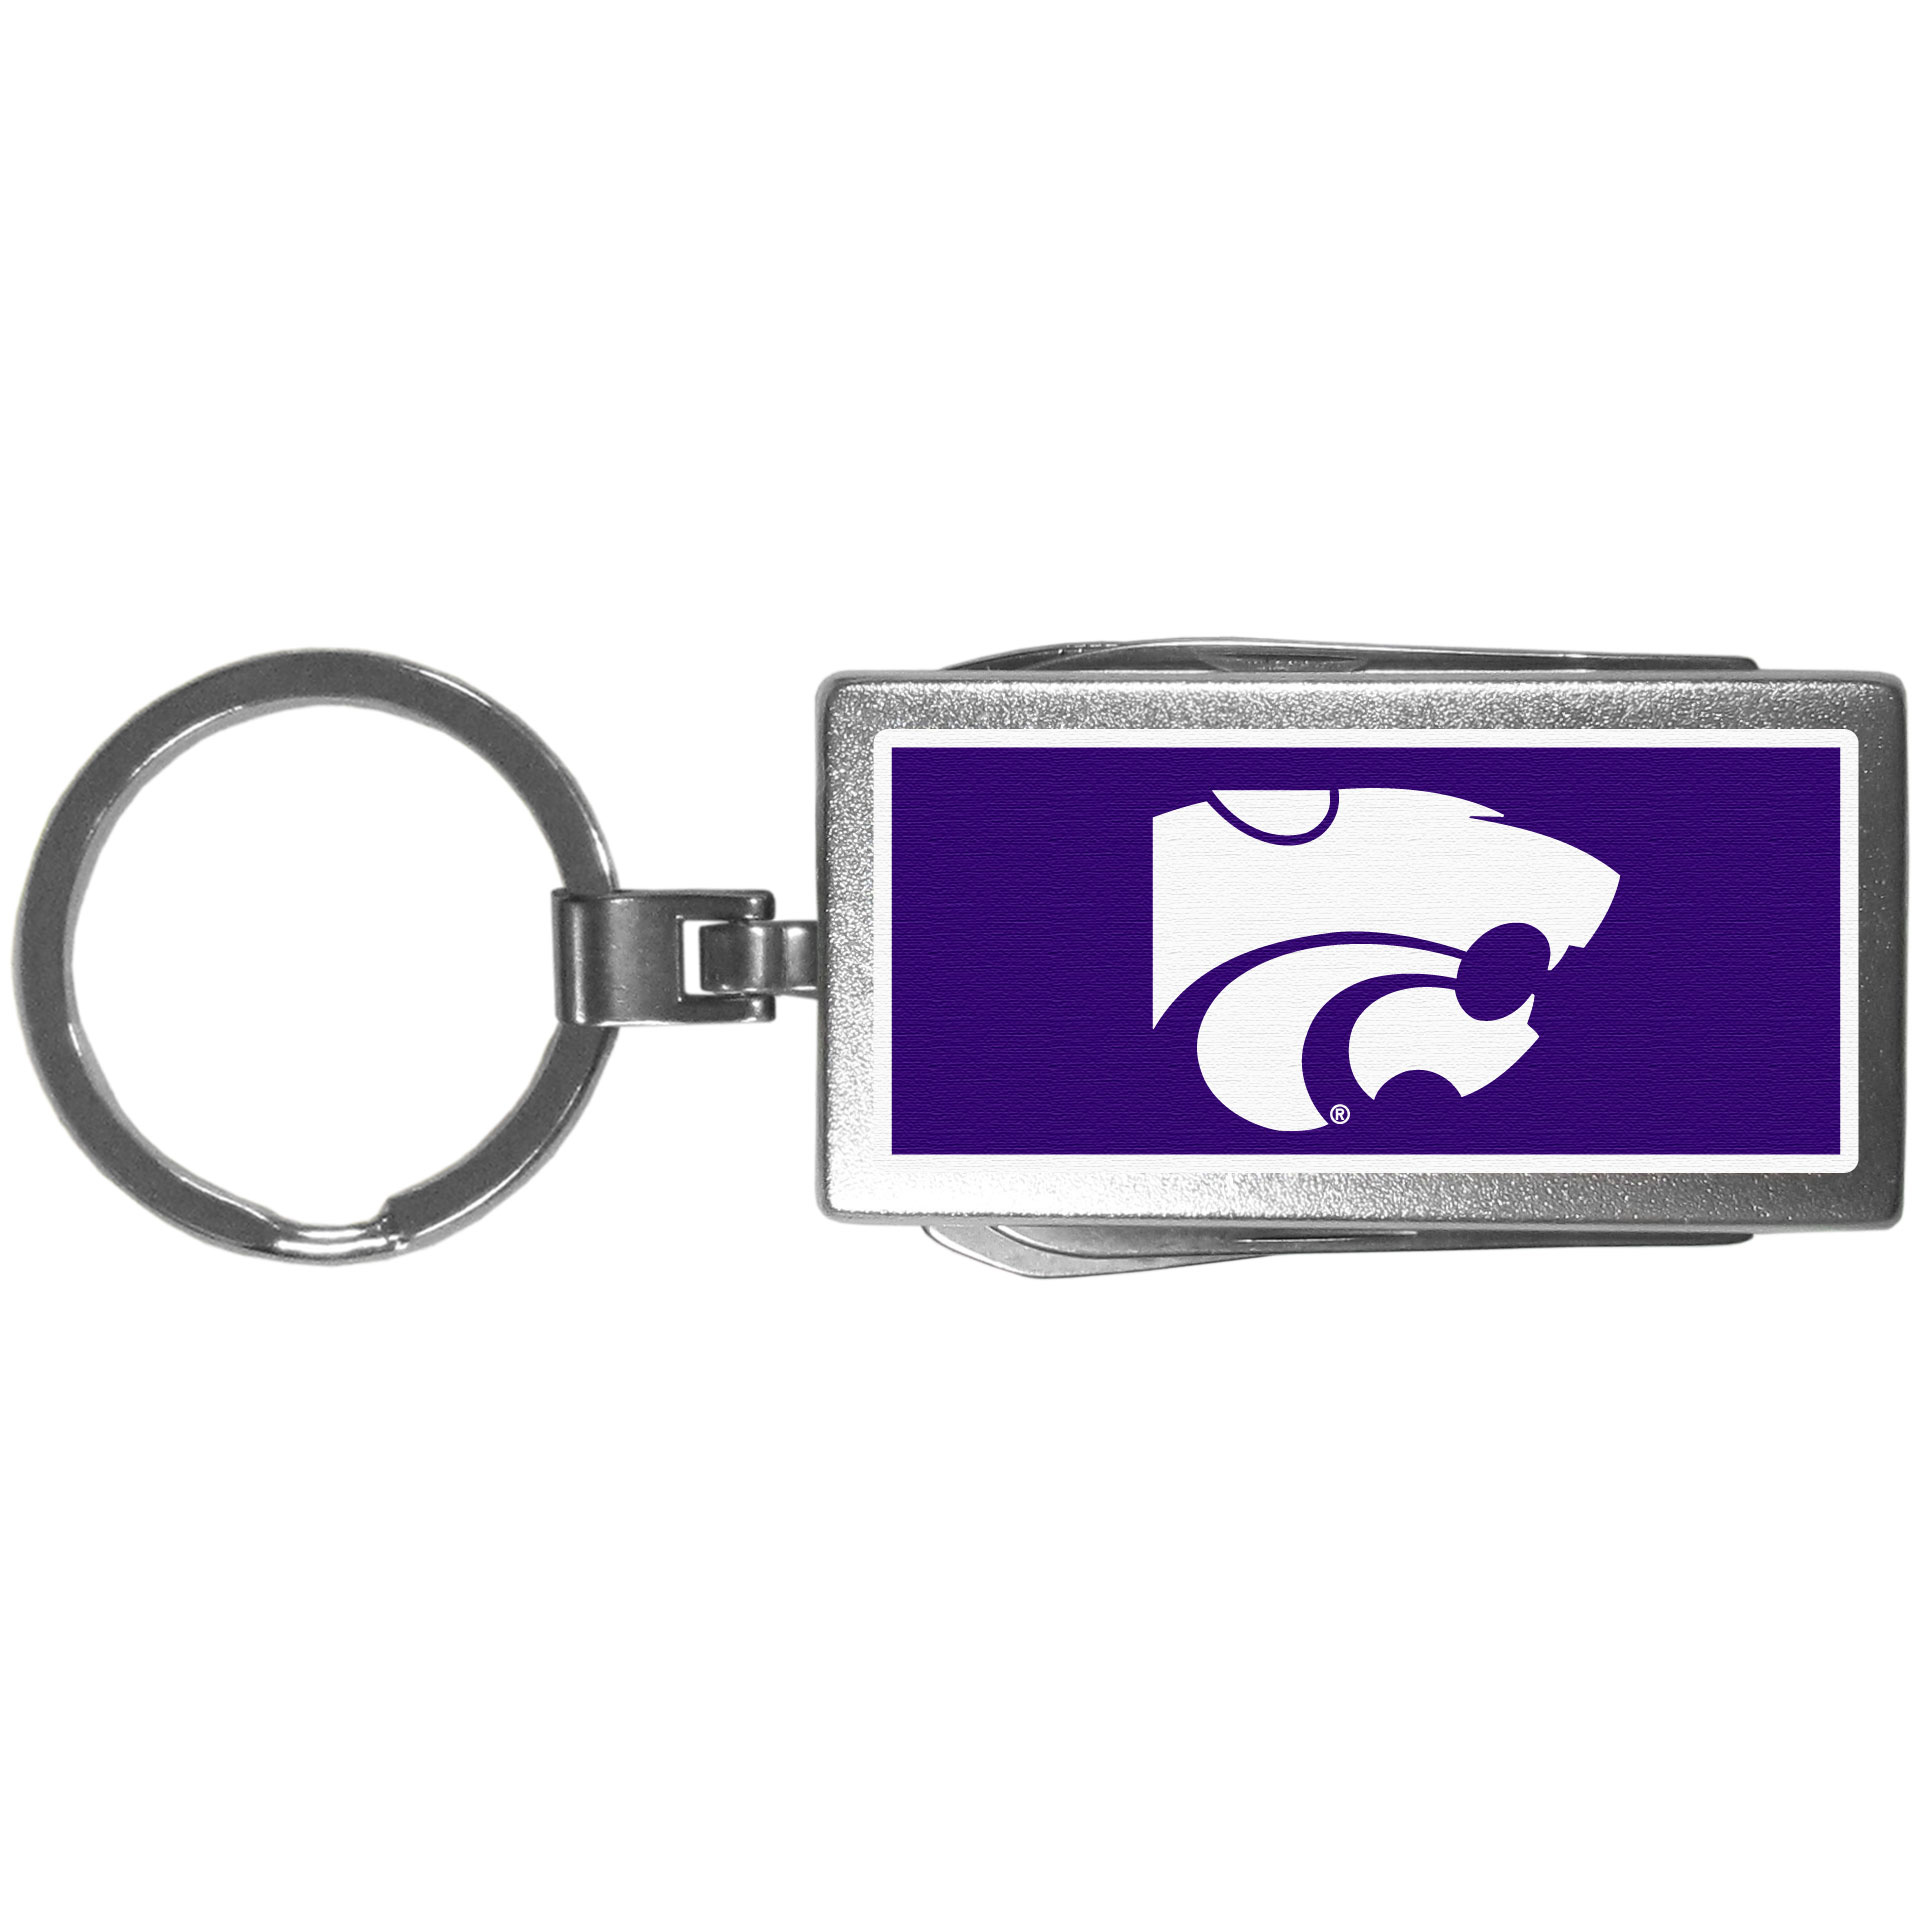 Kansas St. Wildcats Multi-tool Key Chain, Logo - Be the hero at the tailgate, camping, or on a Friday night with your Kansas St. Wildcats Multi-Tool Keychain which comes complete with bottle opener, scissors, knife, nail file and screw driver. Be it opening a package or a beverage Siskiyou's Multi-Tool Keychain goes wherever your keys do. The keychain hangs at 4 inches long when closed.